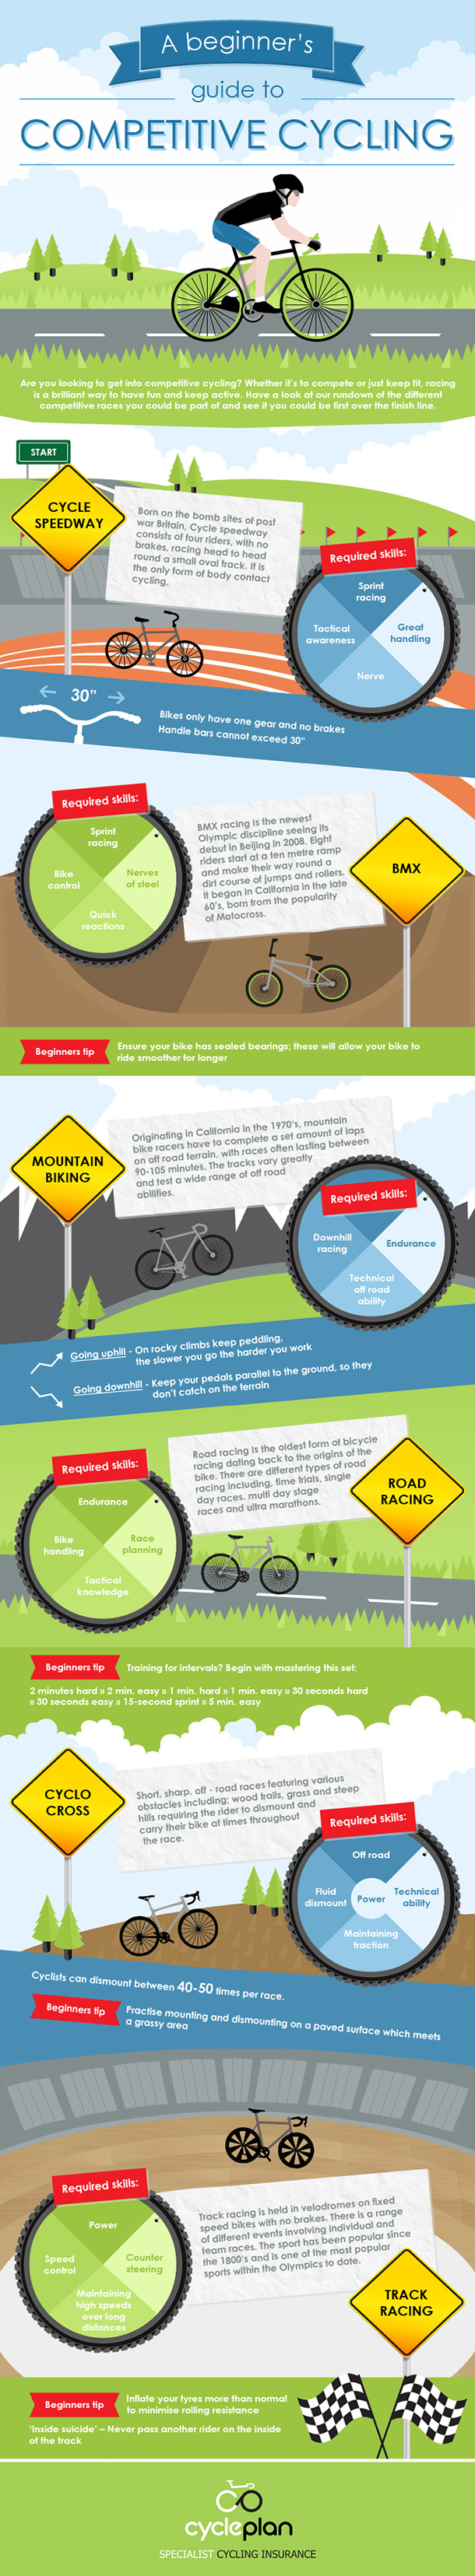 A Beginners Guide to Competitive Cycling